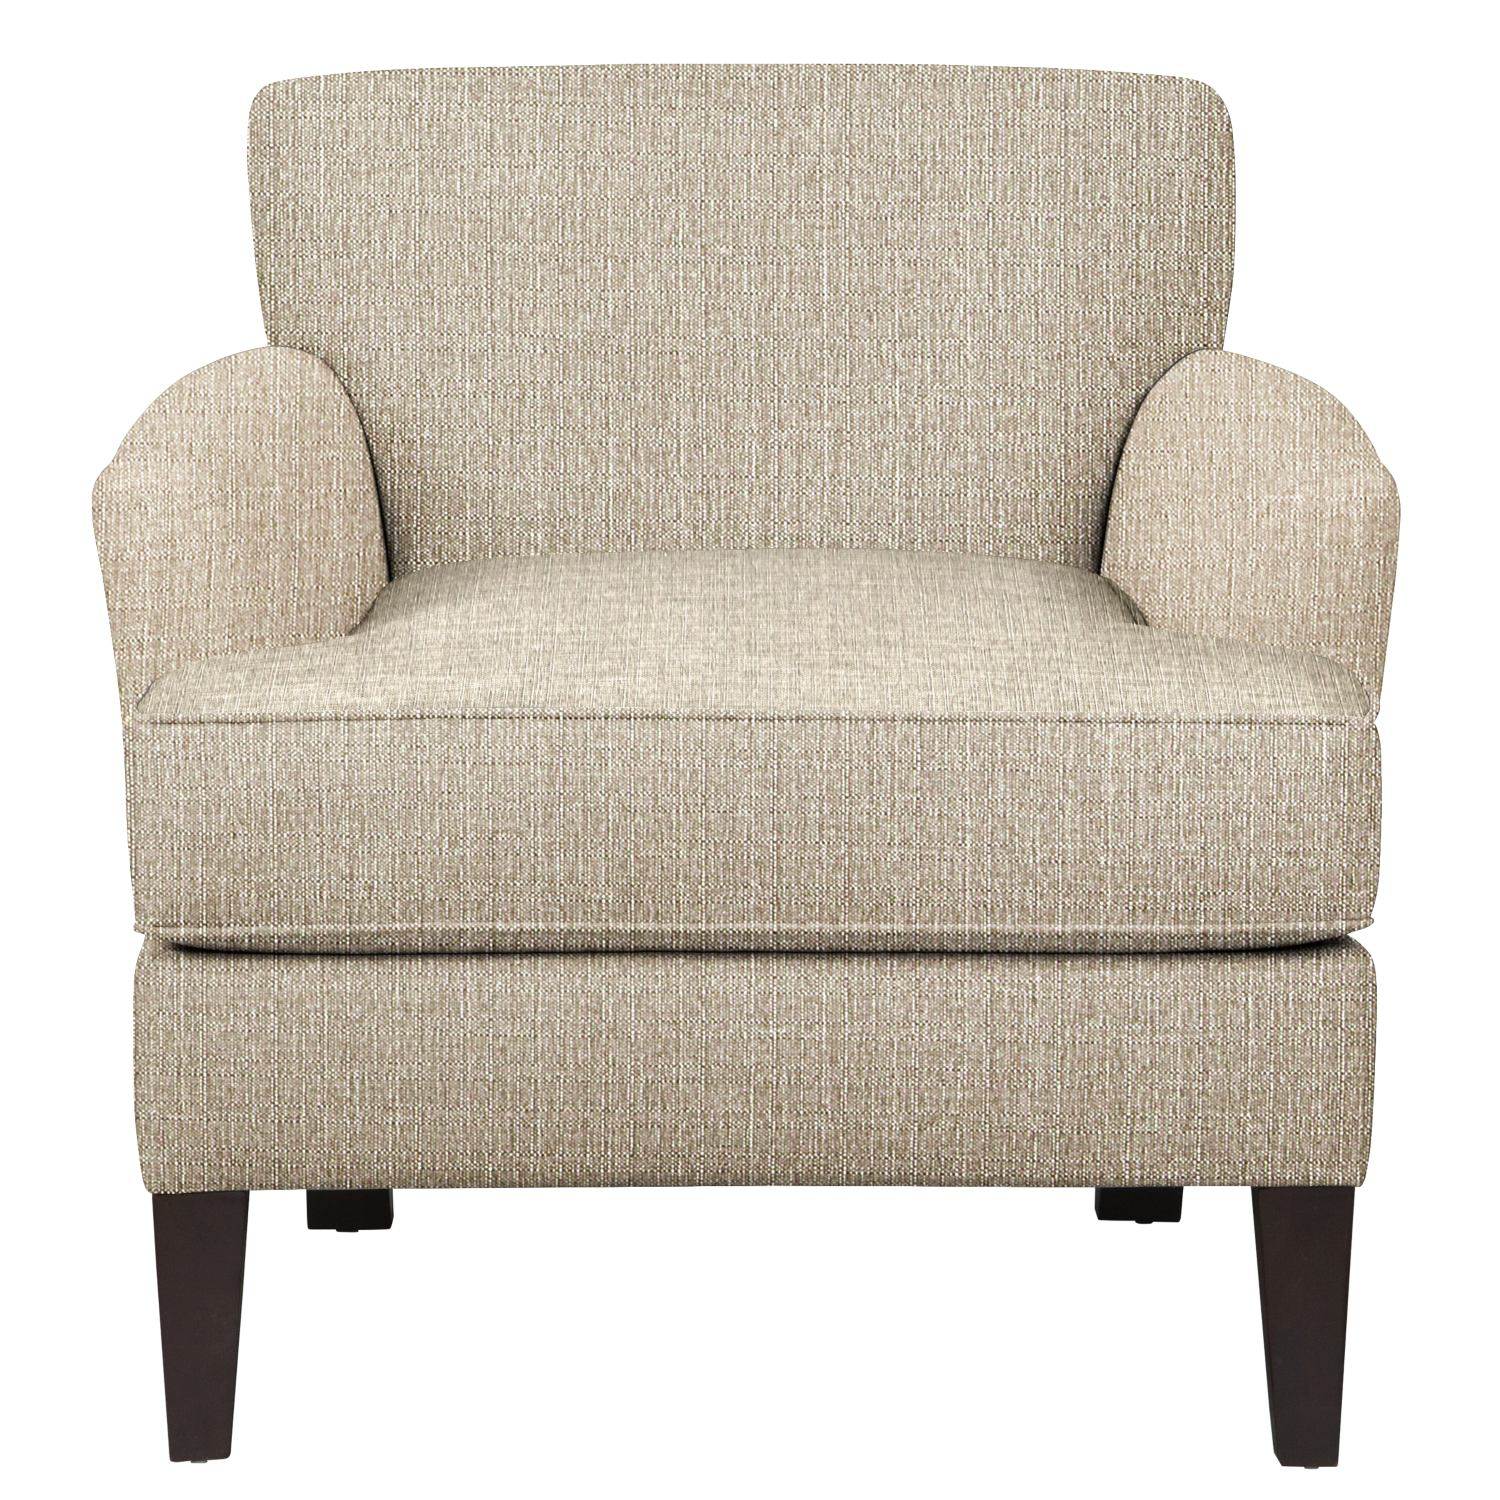 Living Room Furniture - Marcus Chair w/ Depalma Taupe Fabric